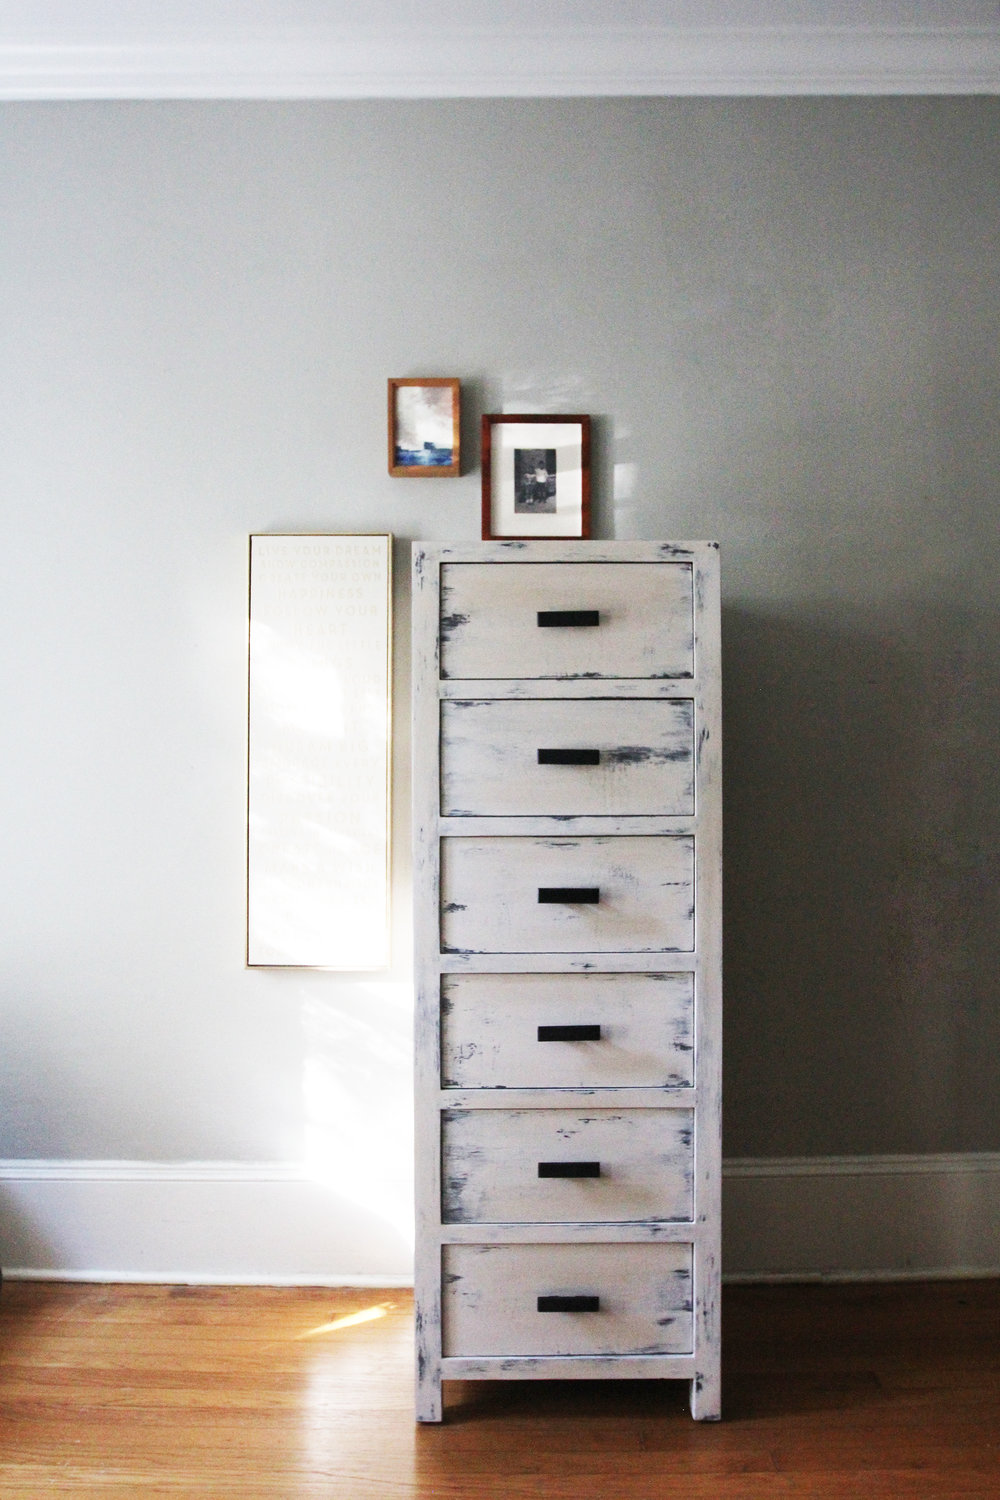 jo-torrijos-a-simpler-design-atlanta-painted-furniture-paint-technique-industrial-aged-finish-vinegar-water-6.jpg